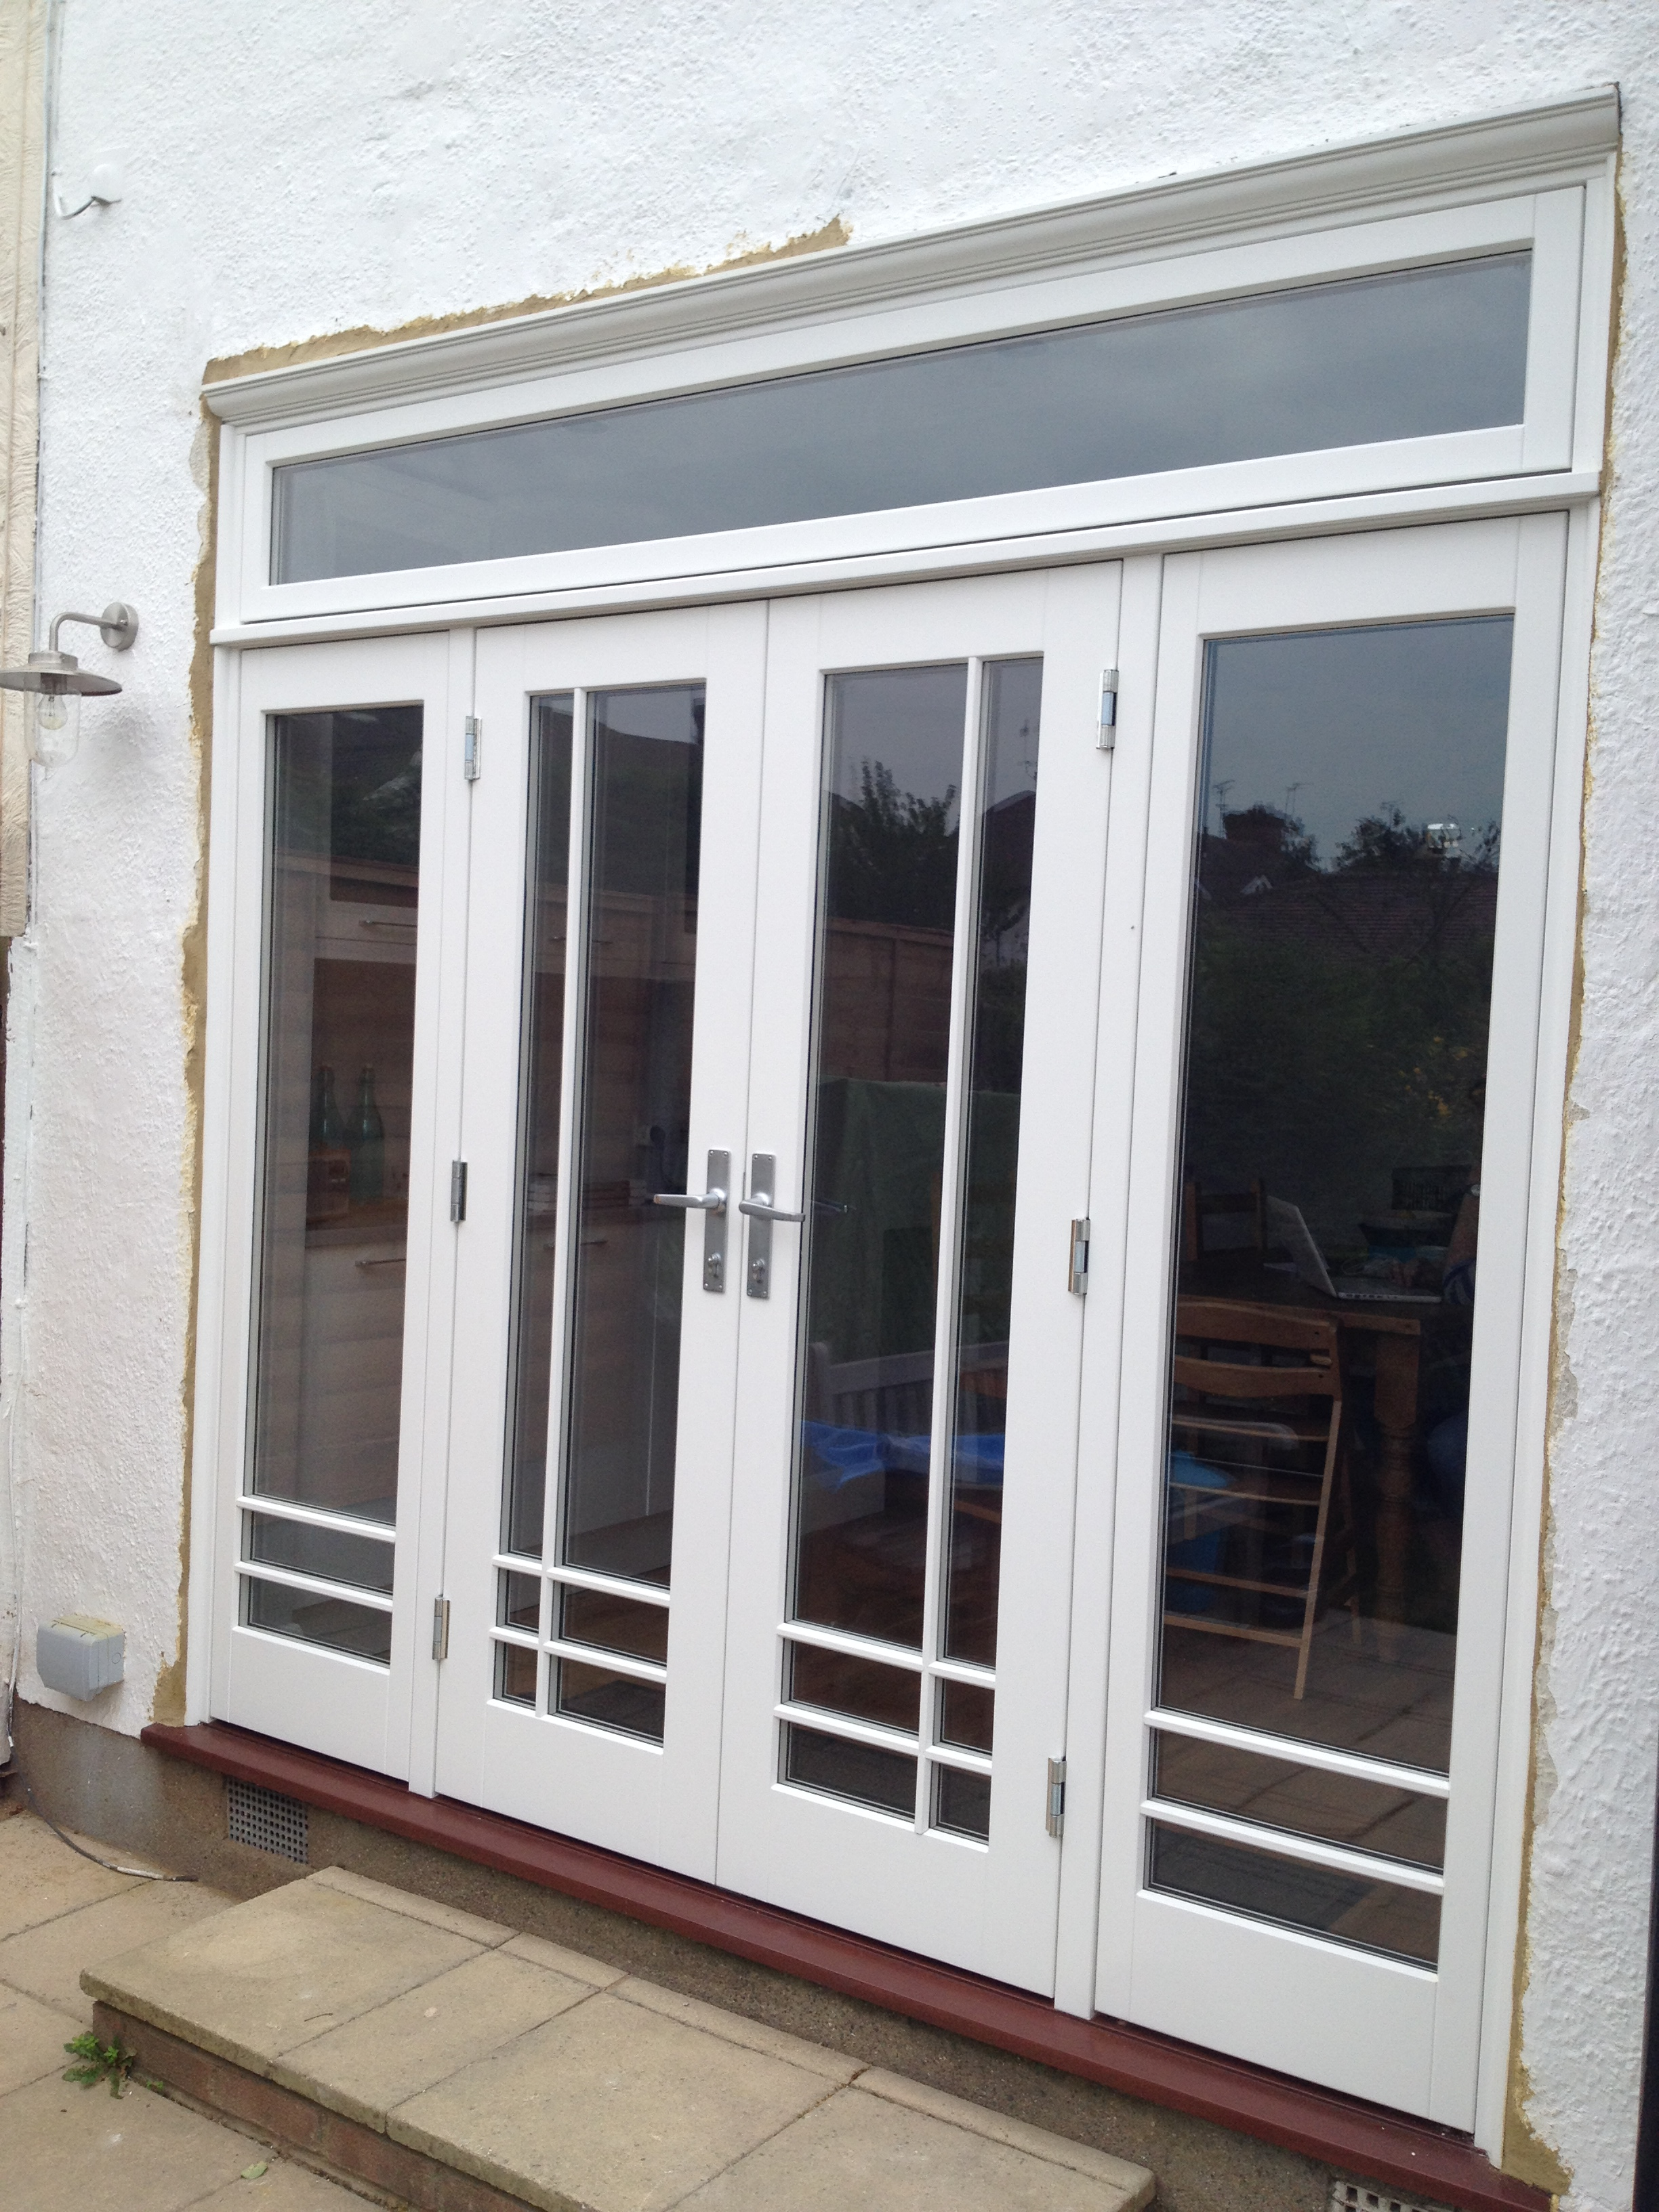 A new art deco style wooden french doorset window in east a new art deco style wooden french doorset window in east london timber windows doors london replacement timber window frames online sciox Images